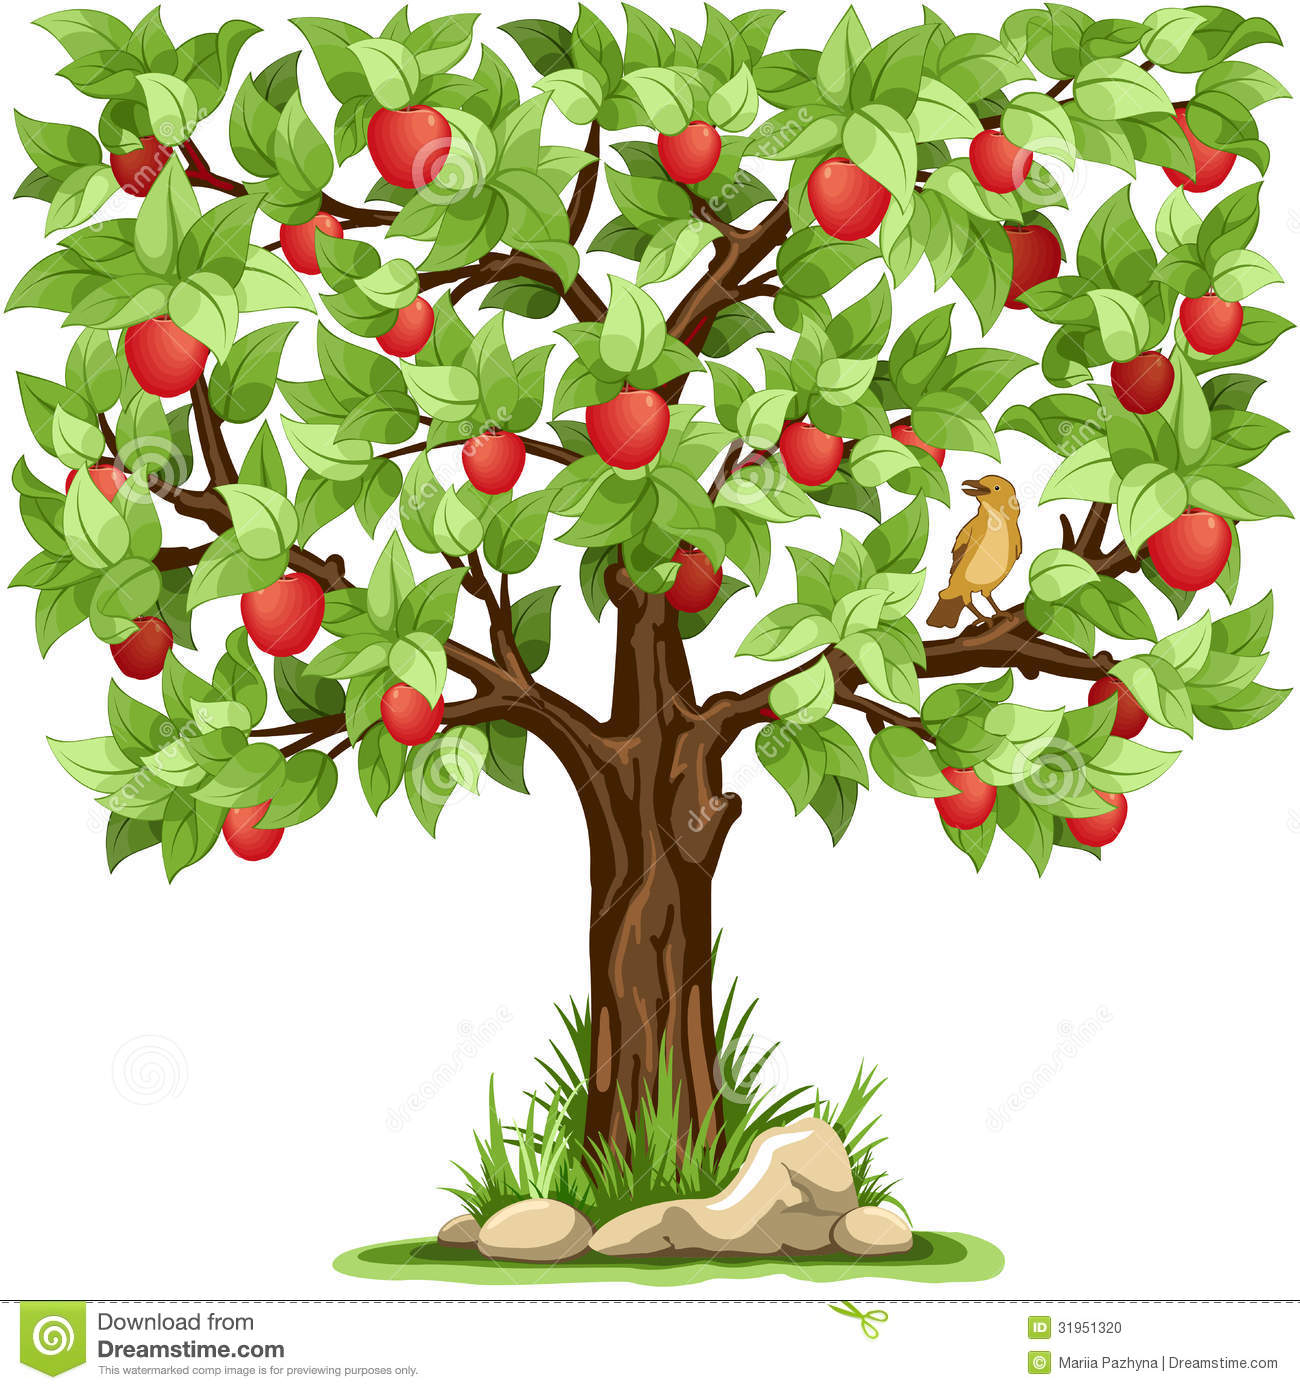 Cartoon apple tree isolated on white background.